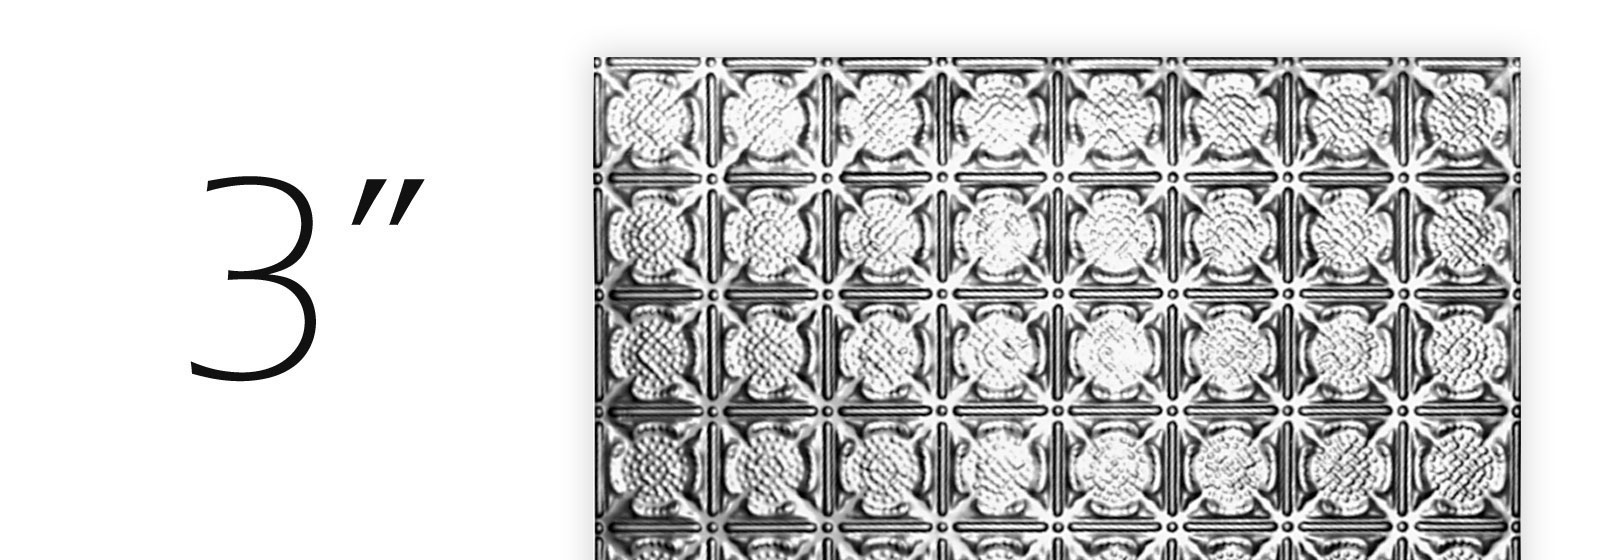 Tin ceiling tiles 3 inch pattern shop diy shop all 03 pattern now dailygadgetfo Gallery